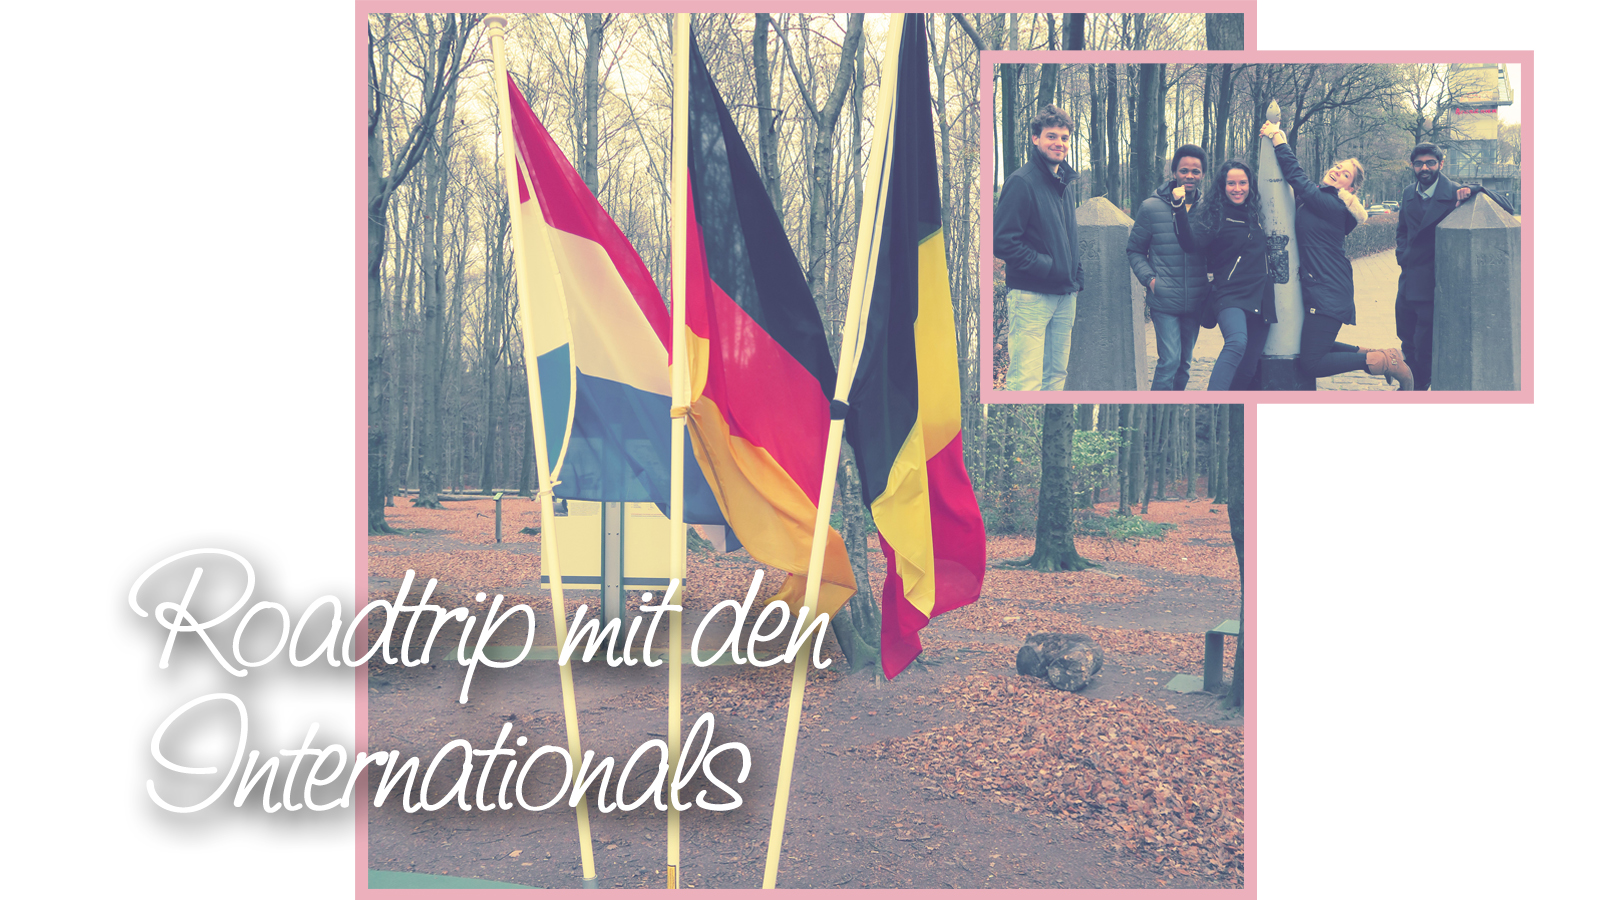 Roadtrip mit den Internationals Image